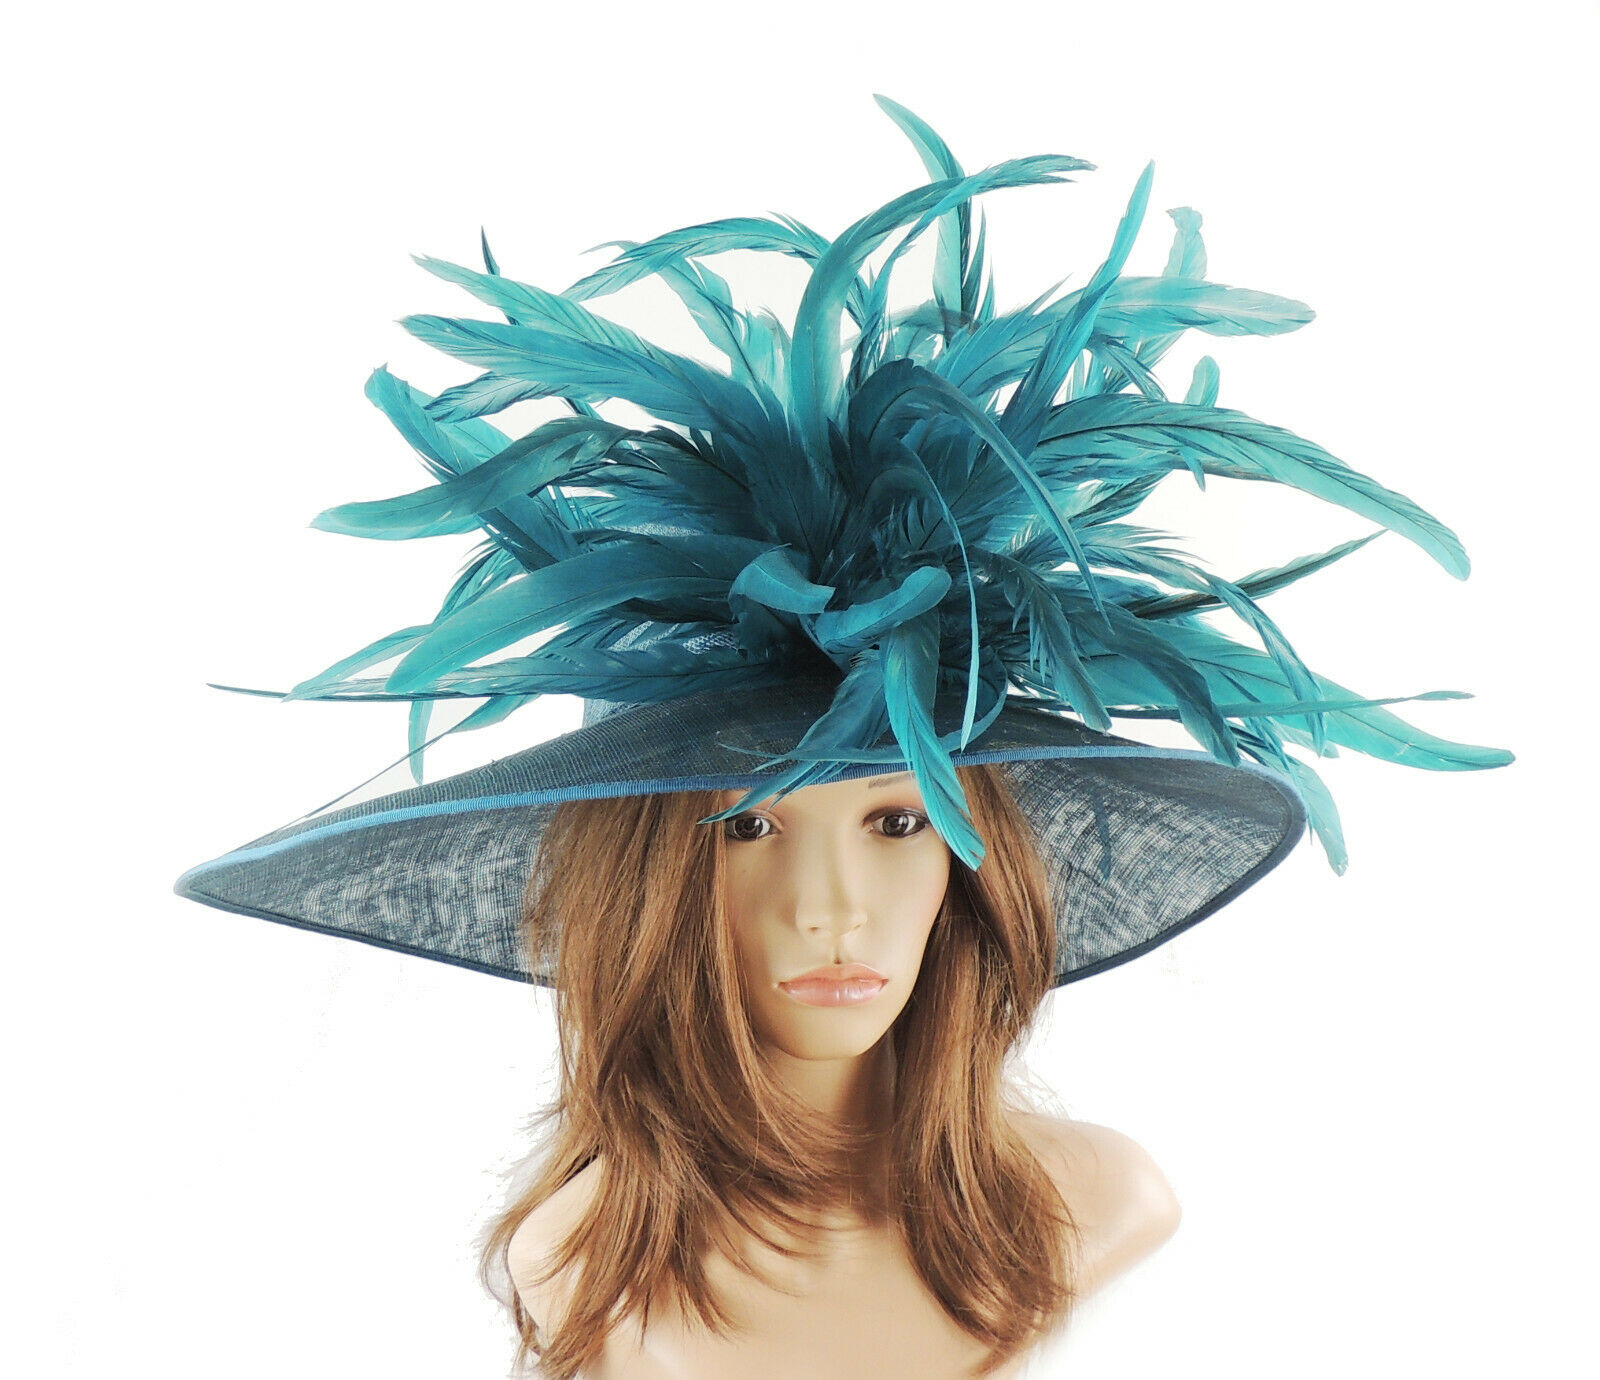 Teal Large Ascot Hat for Weddings, Ascot, Melbourne Cup HW2